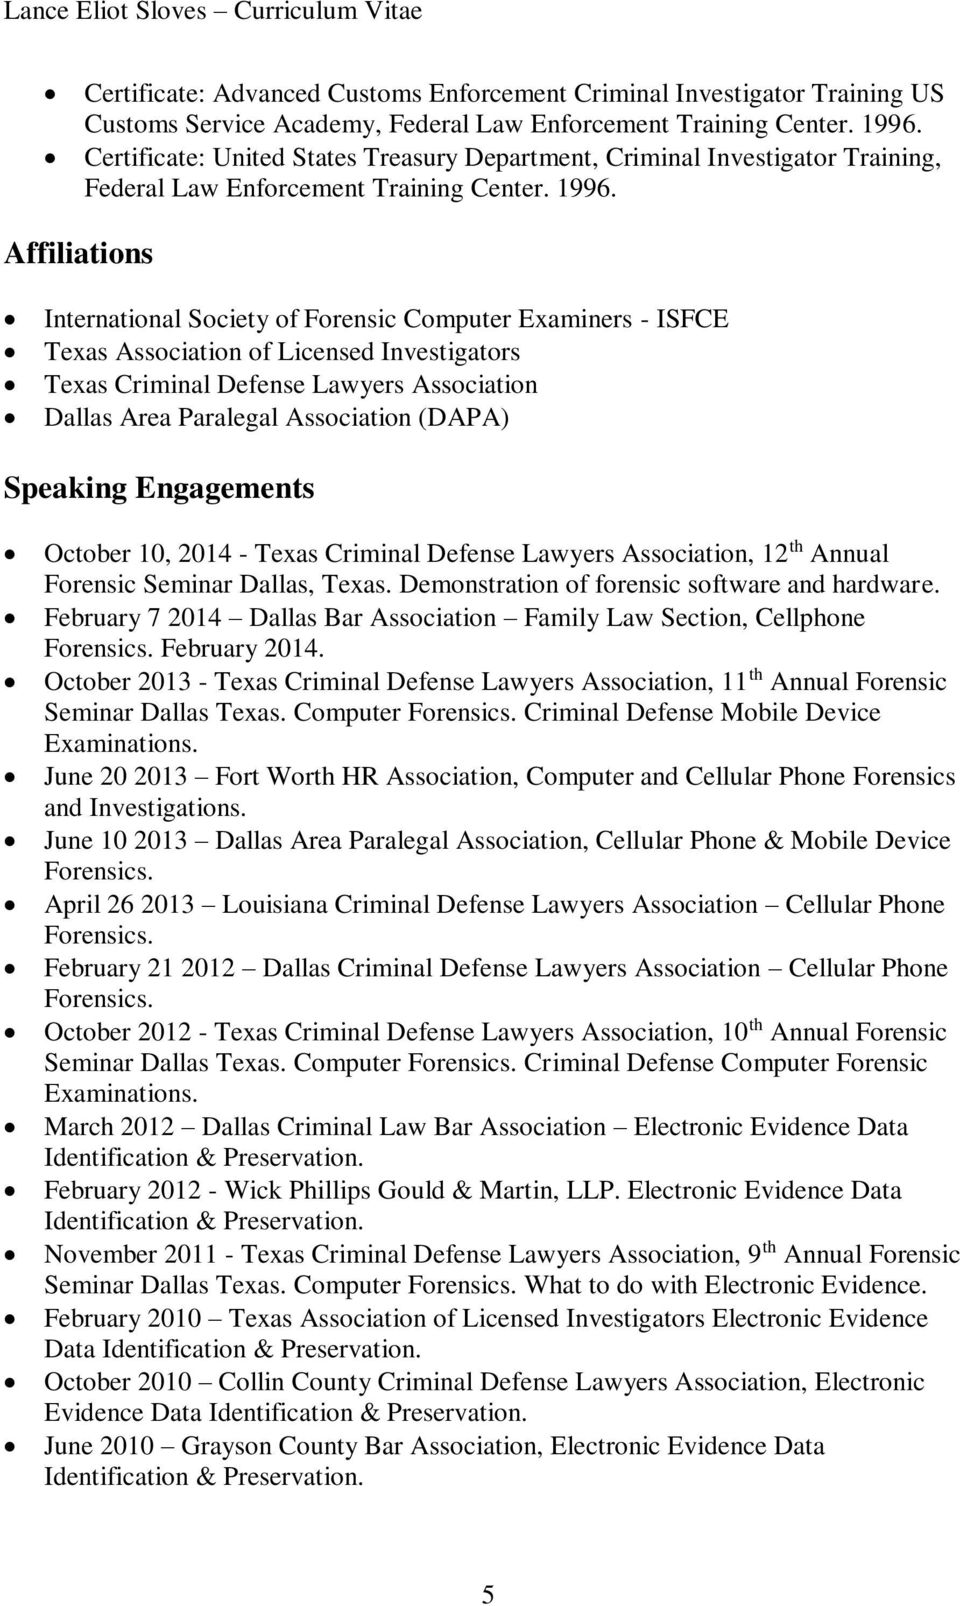 Affiliations International Society of Forensic Computer Examiners - ISFCE Texas Association of Licensed Investigators Texas Criminal Defense Lawyers Association Dallas Area Paralegal Association